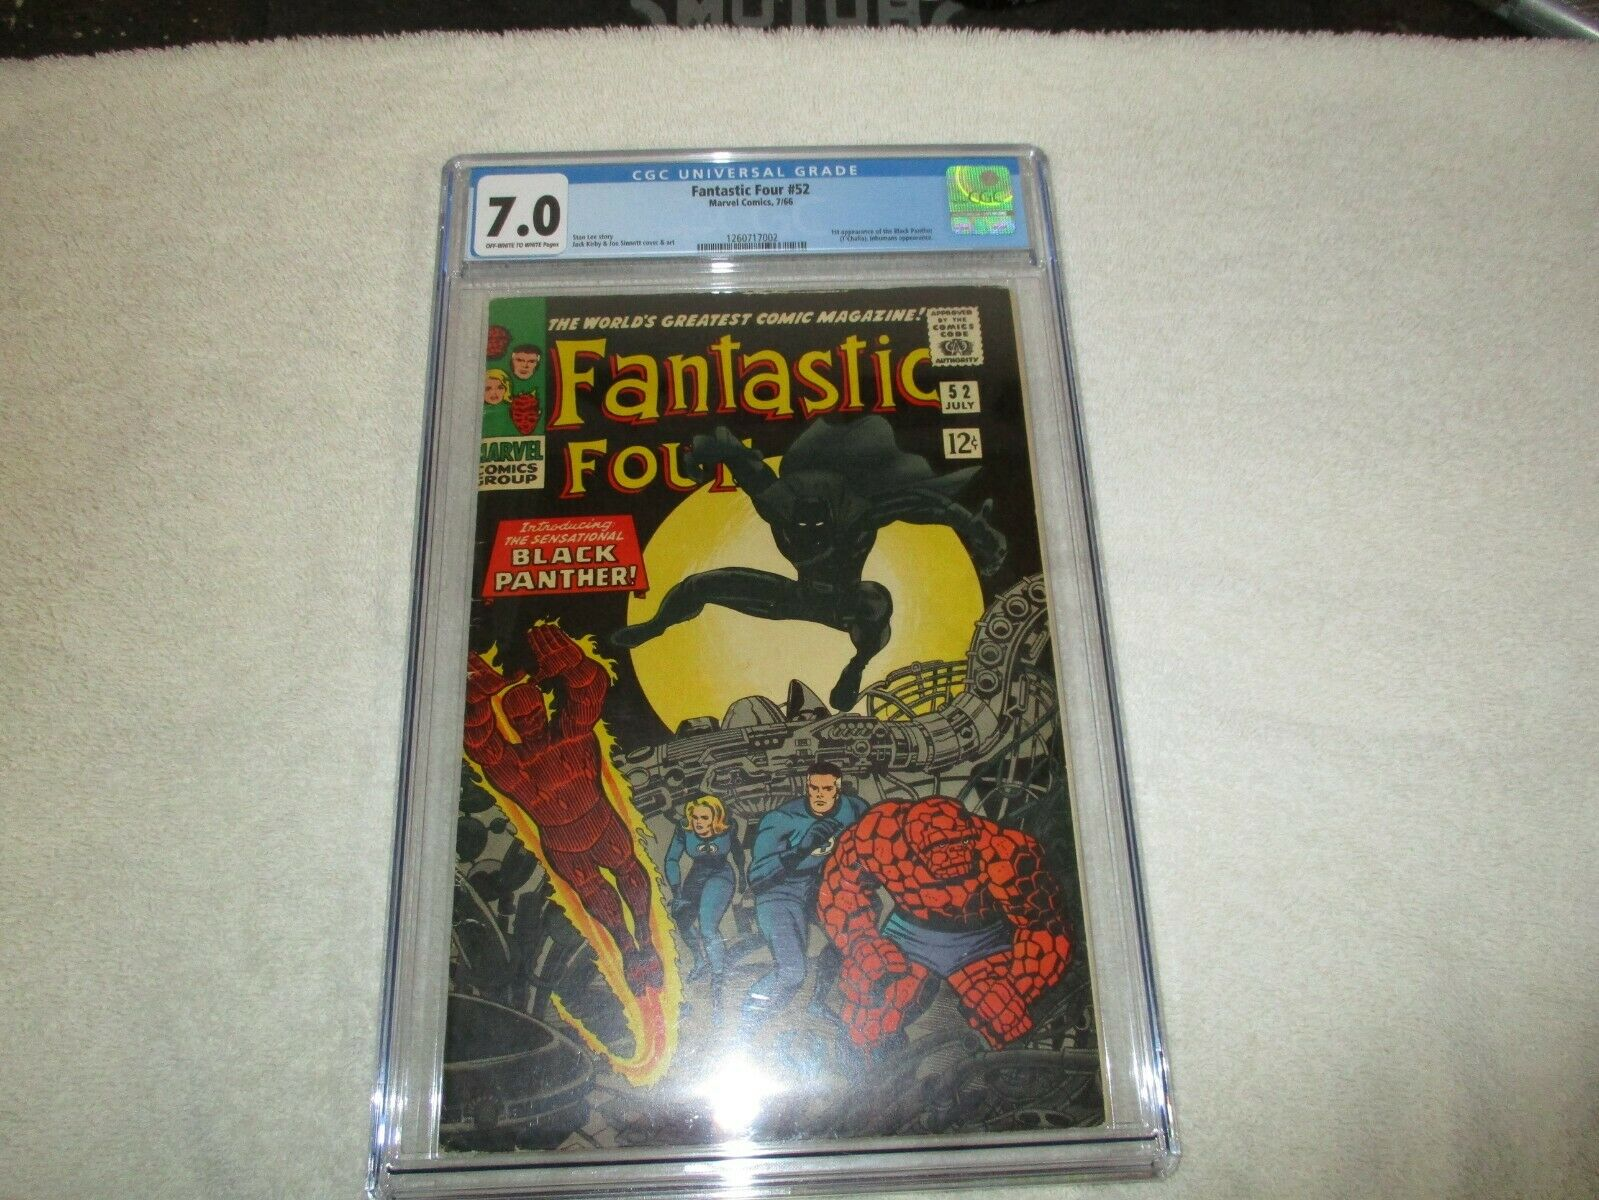 Fantastic Four 52 CGC 70 Jul 1966 Marvel first appearance of Black Panther